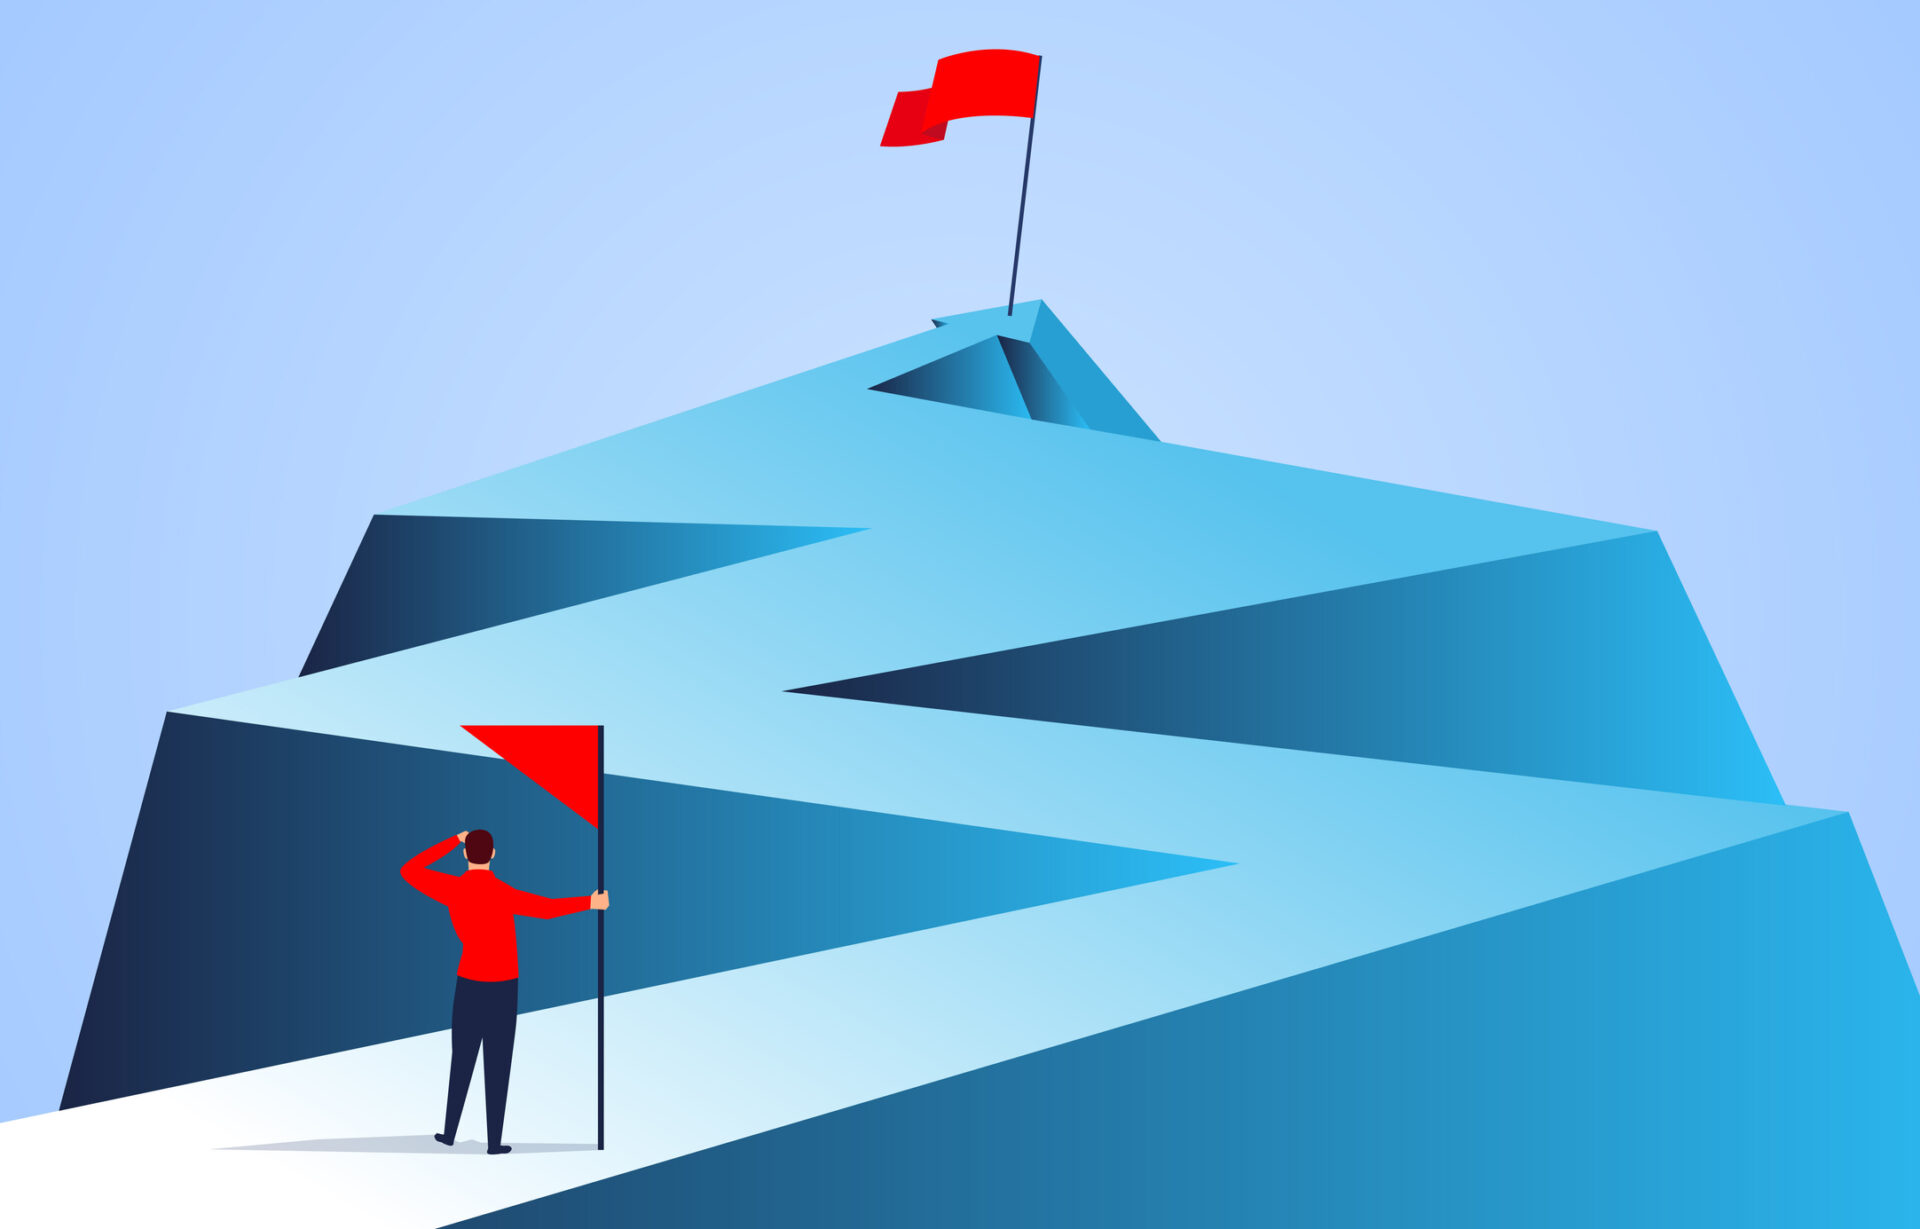 Businessman holding a flag looking at the flag farther from the top of the arrow